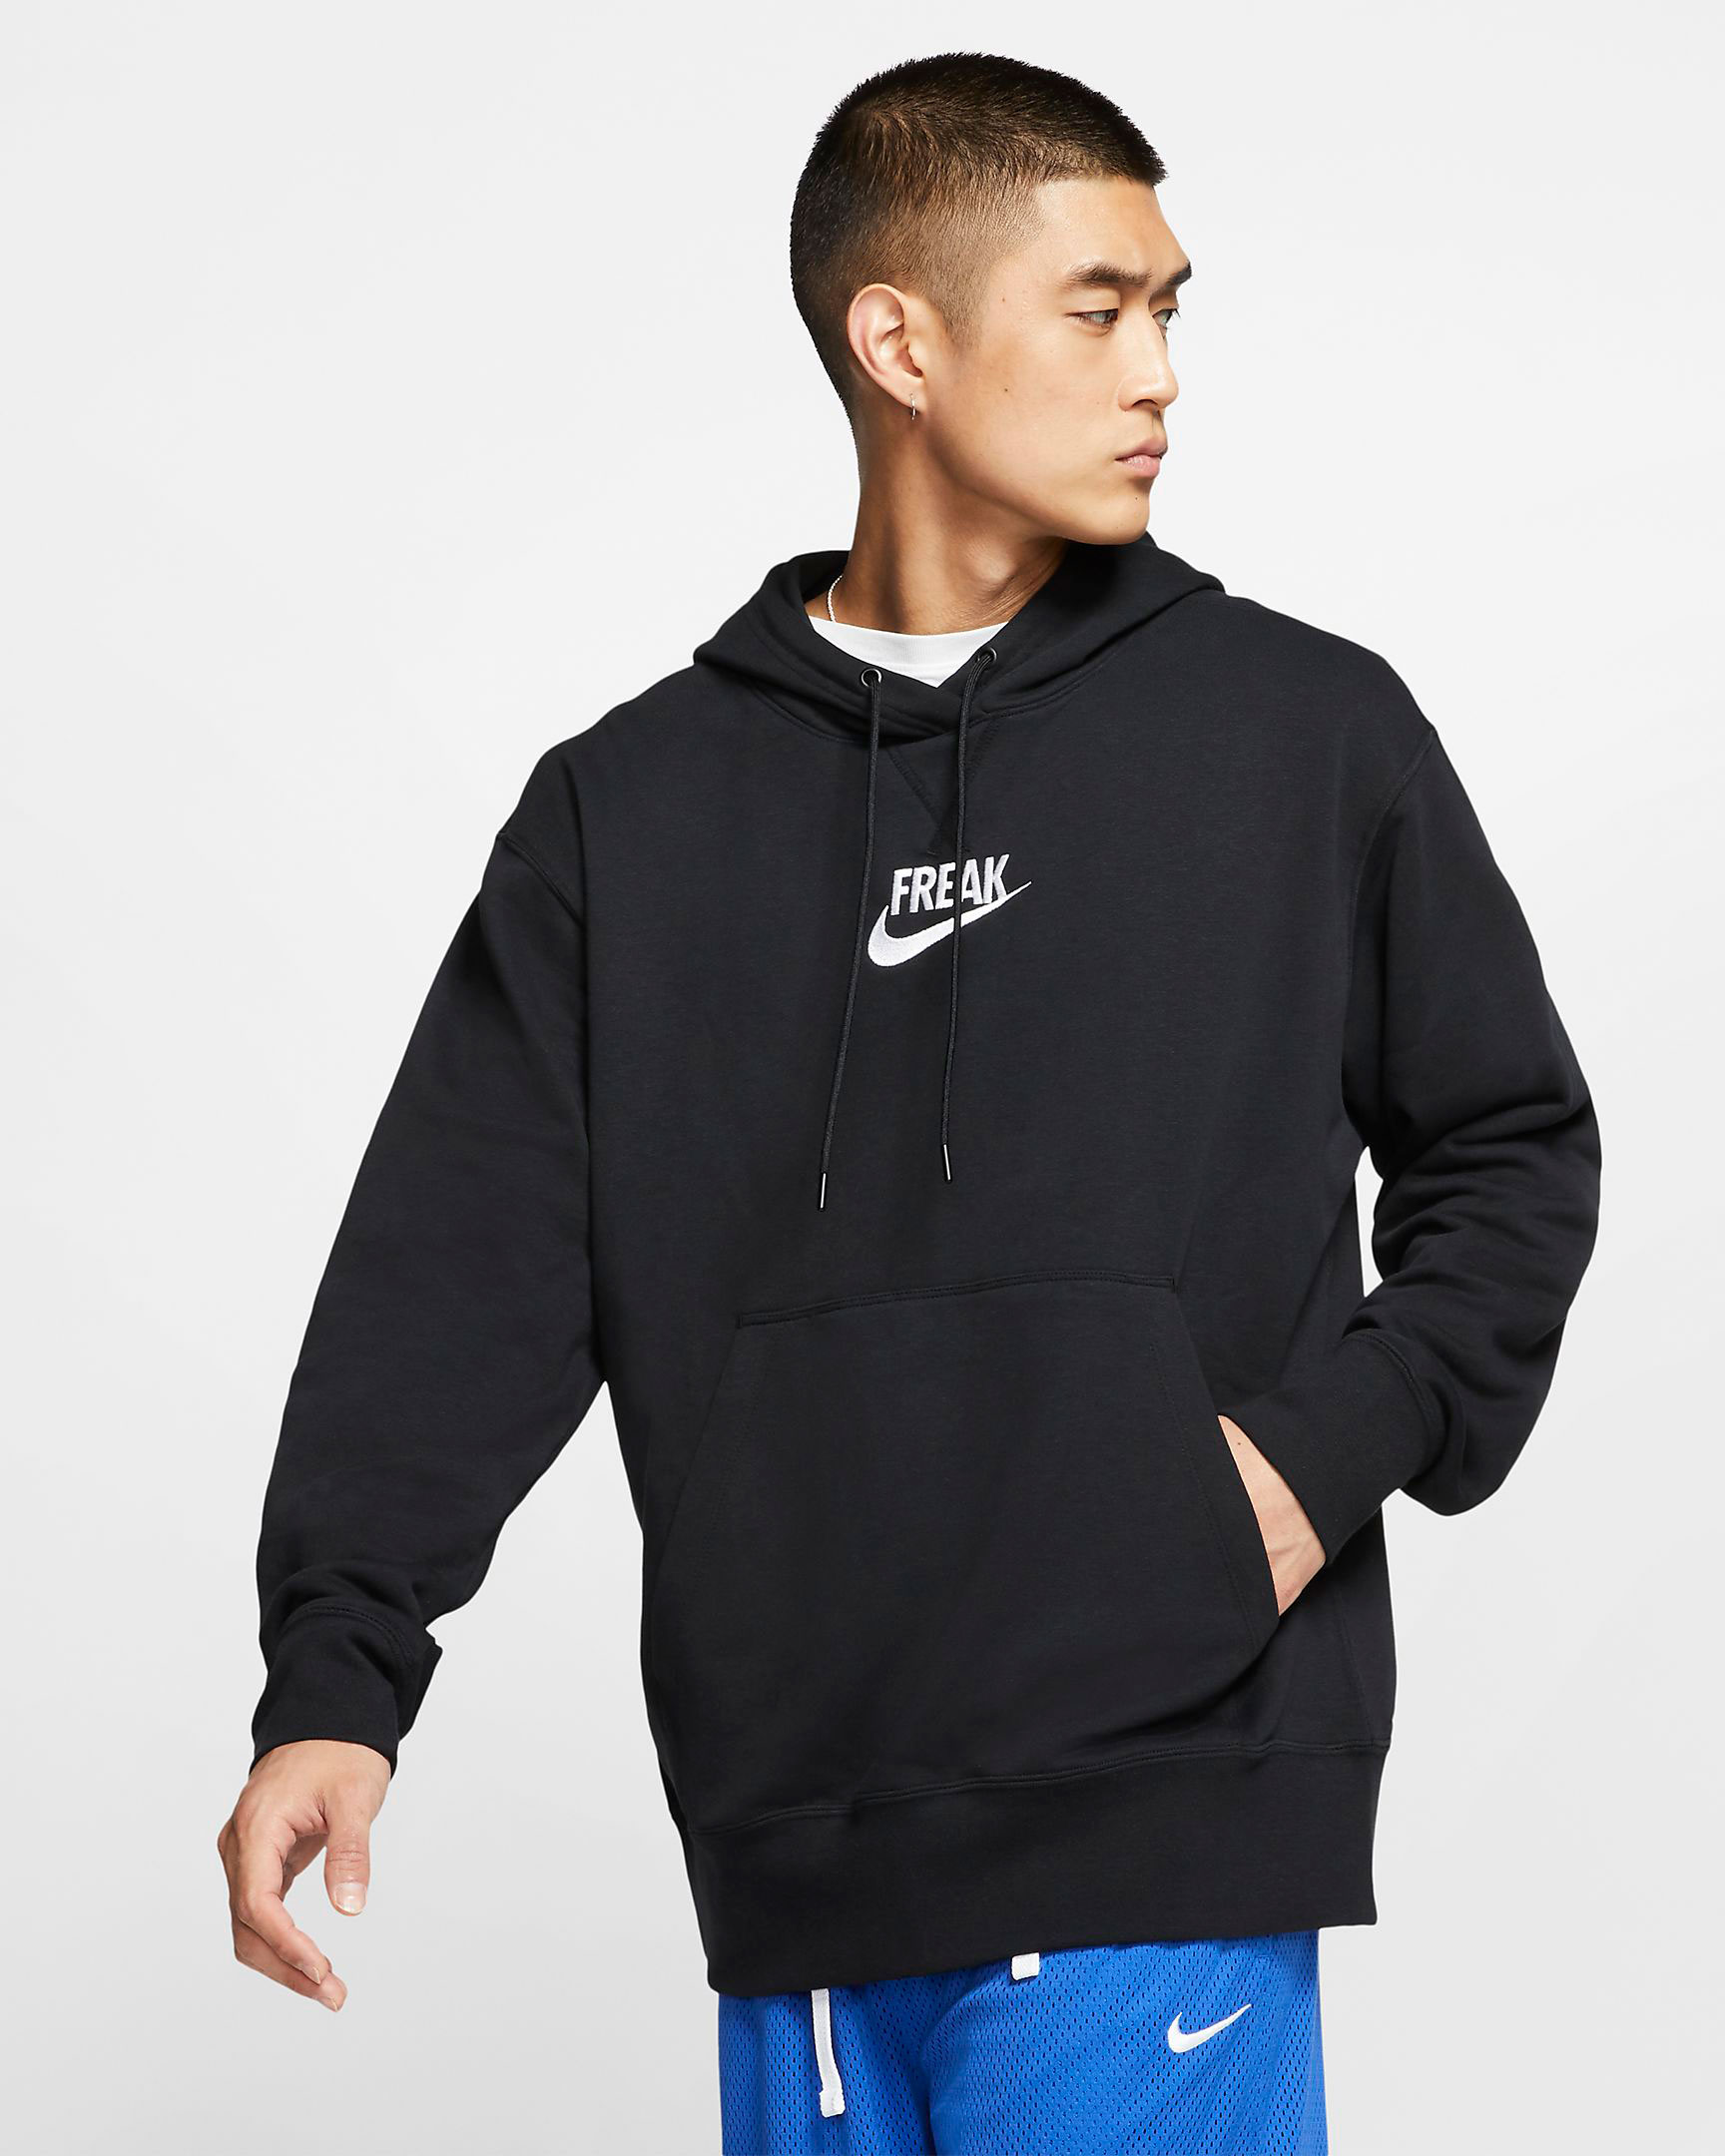 nike-zoom-freak-1-black-white-giannis-hoodie